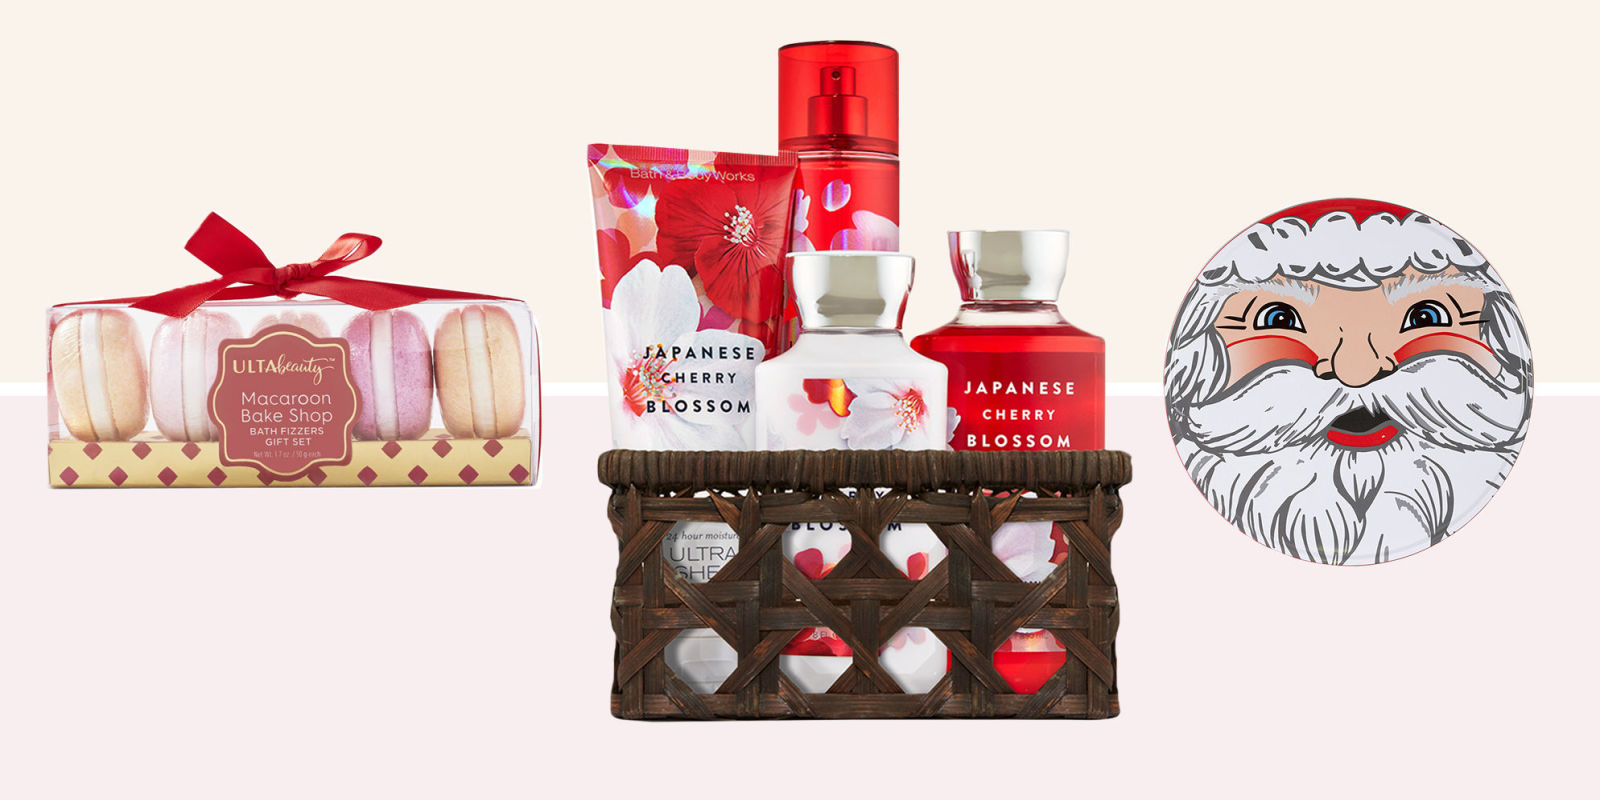 11 Best Bath Gift Sets for Her in 2016 - Bath and Body ...